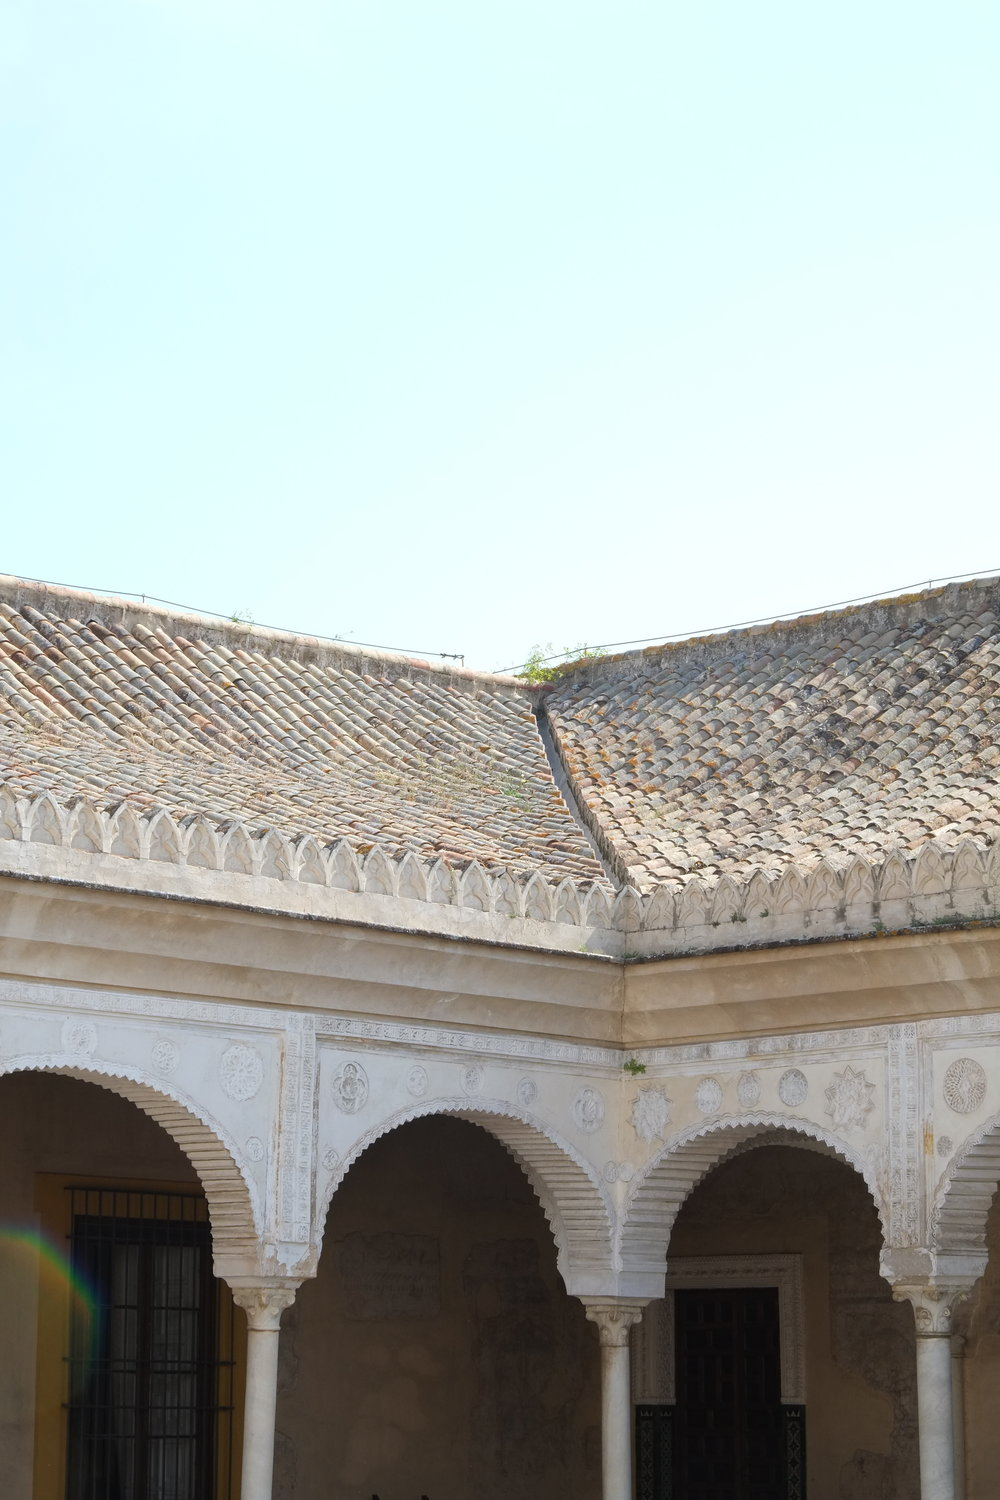 Roof top of Casa de Pilatos